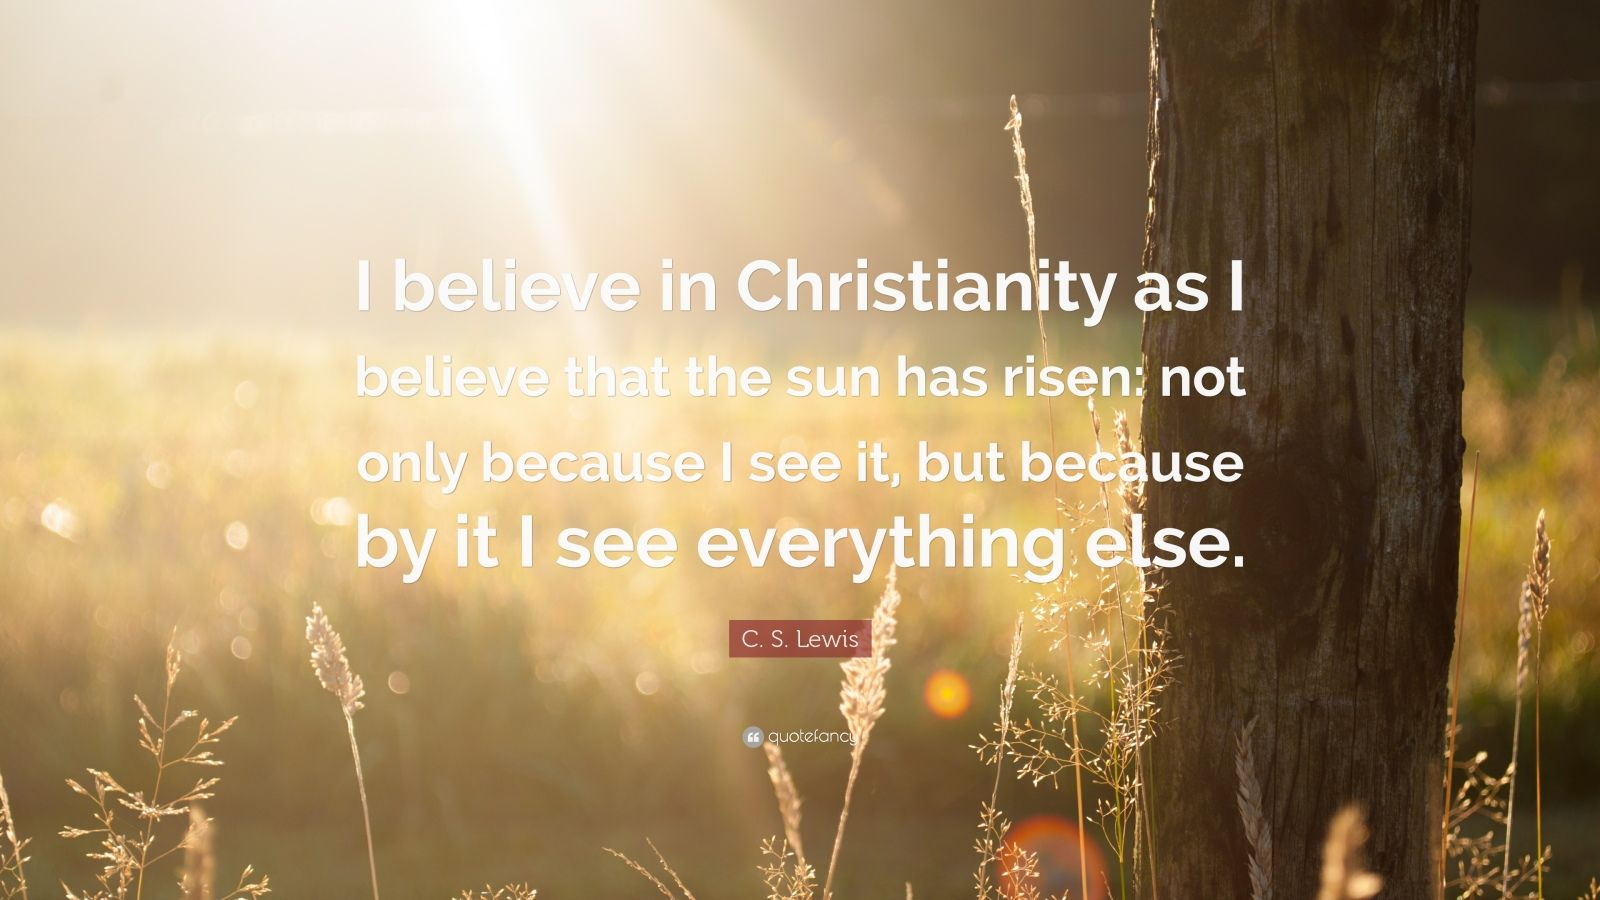 "C. S. Lewis Quote: ""I believe in Christianity as I believe that the sun has risen: not only because I see it, but because by it I see everything else."""